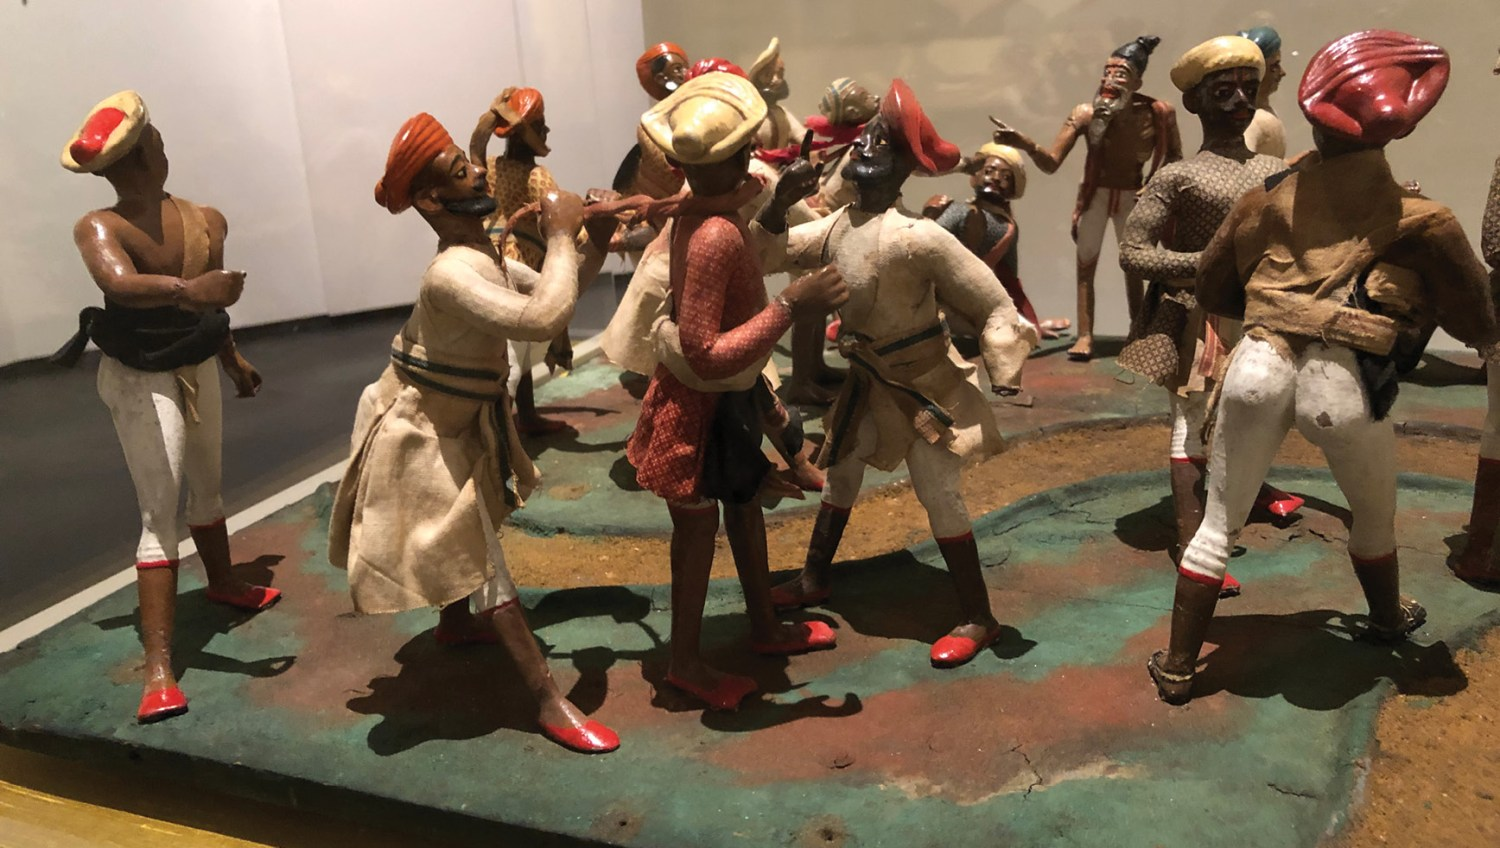 BELOW An early 19th-century model from India, showing travellers being assaulted and slain by Thugs.